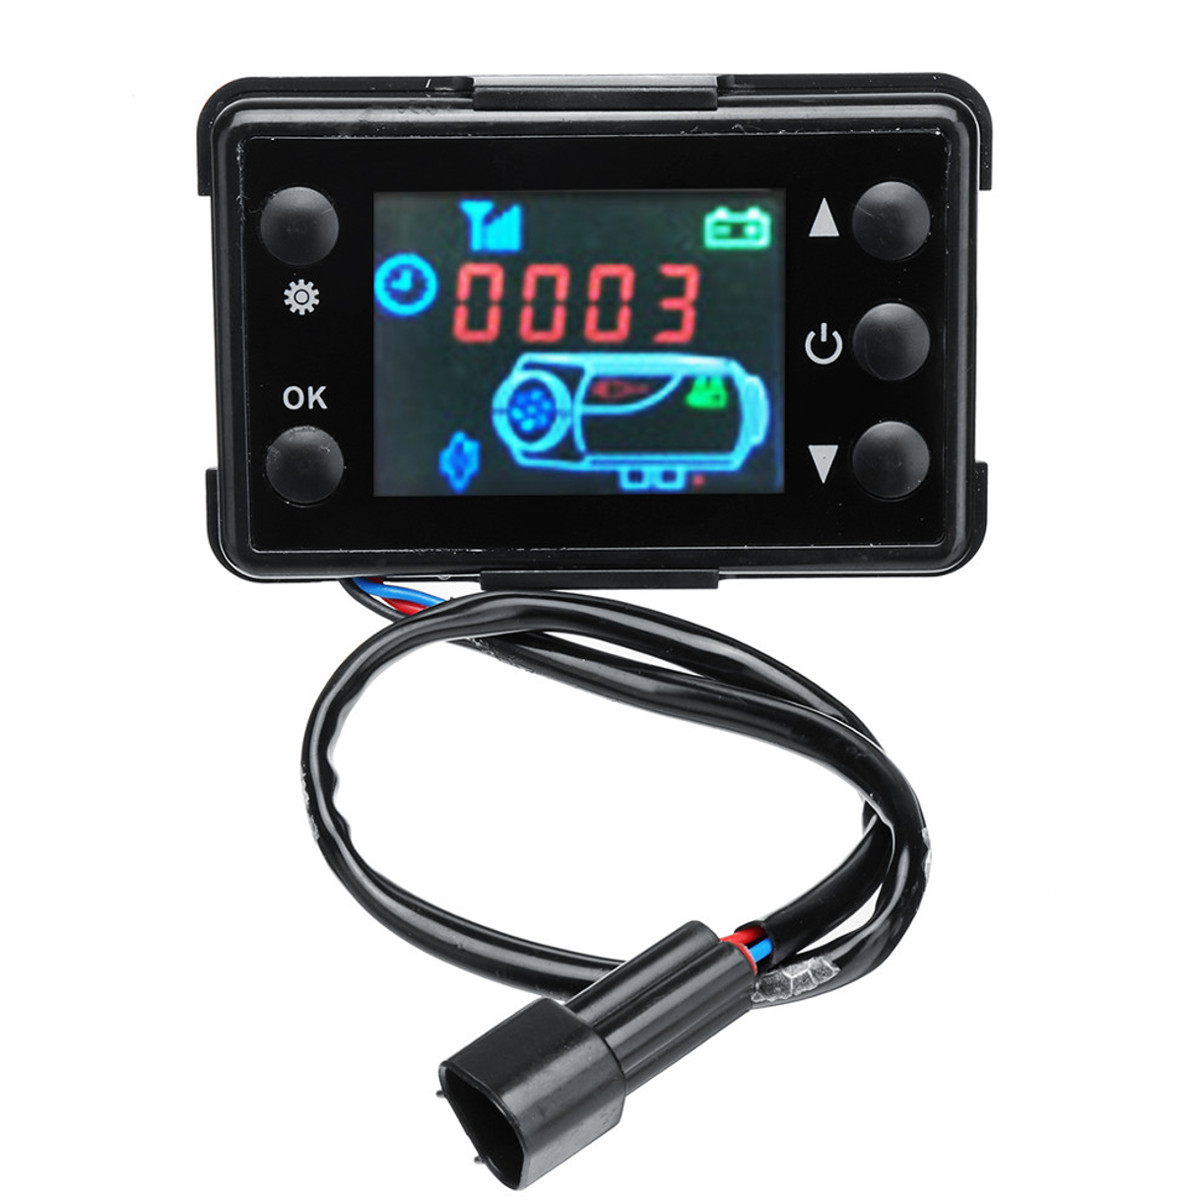 Electric Vehicle Parts 12v/24v 3/5kw Lcd Monitor Parking Heater Switch Car Heating Device Controller Universal For Car Track Air Heater Automobiles & Motorcycles